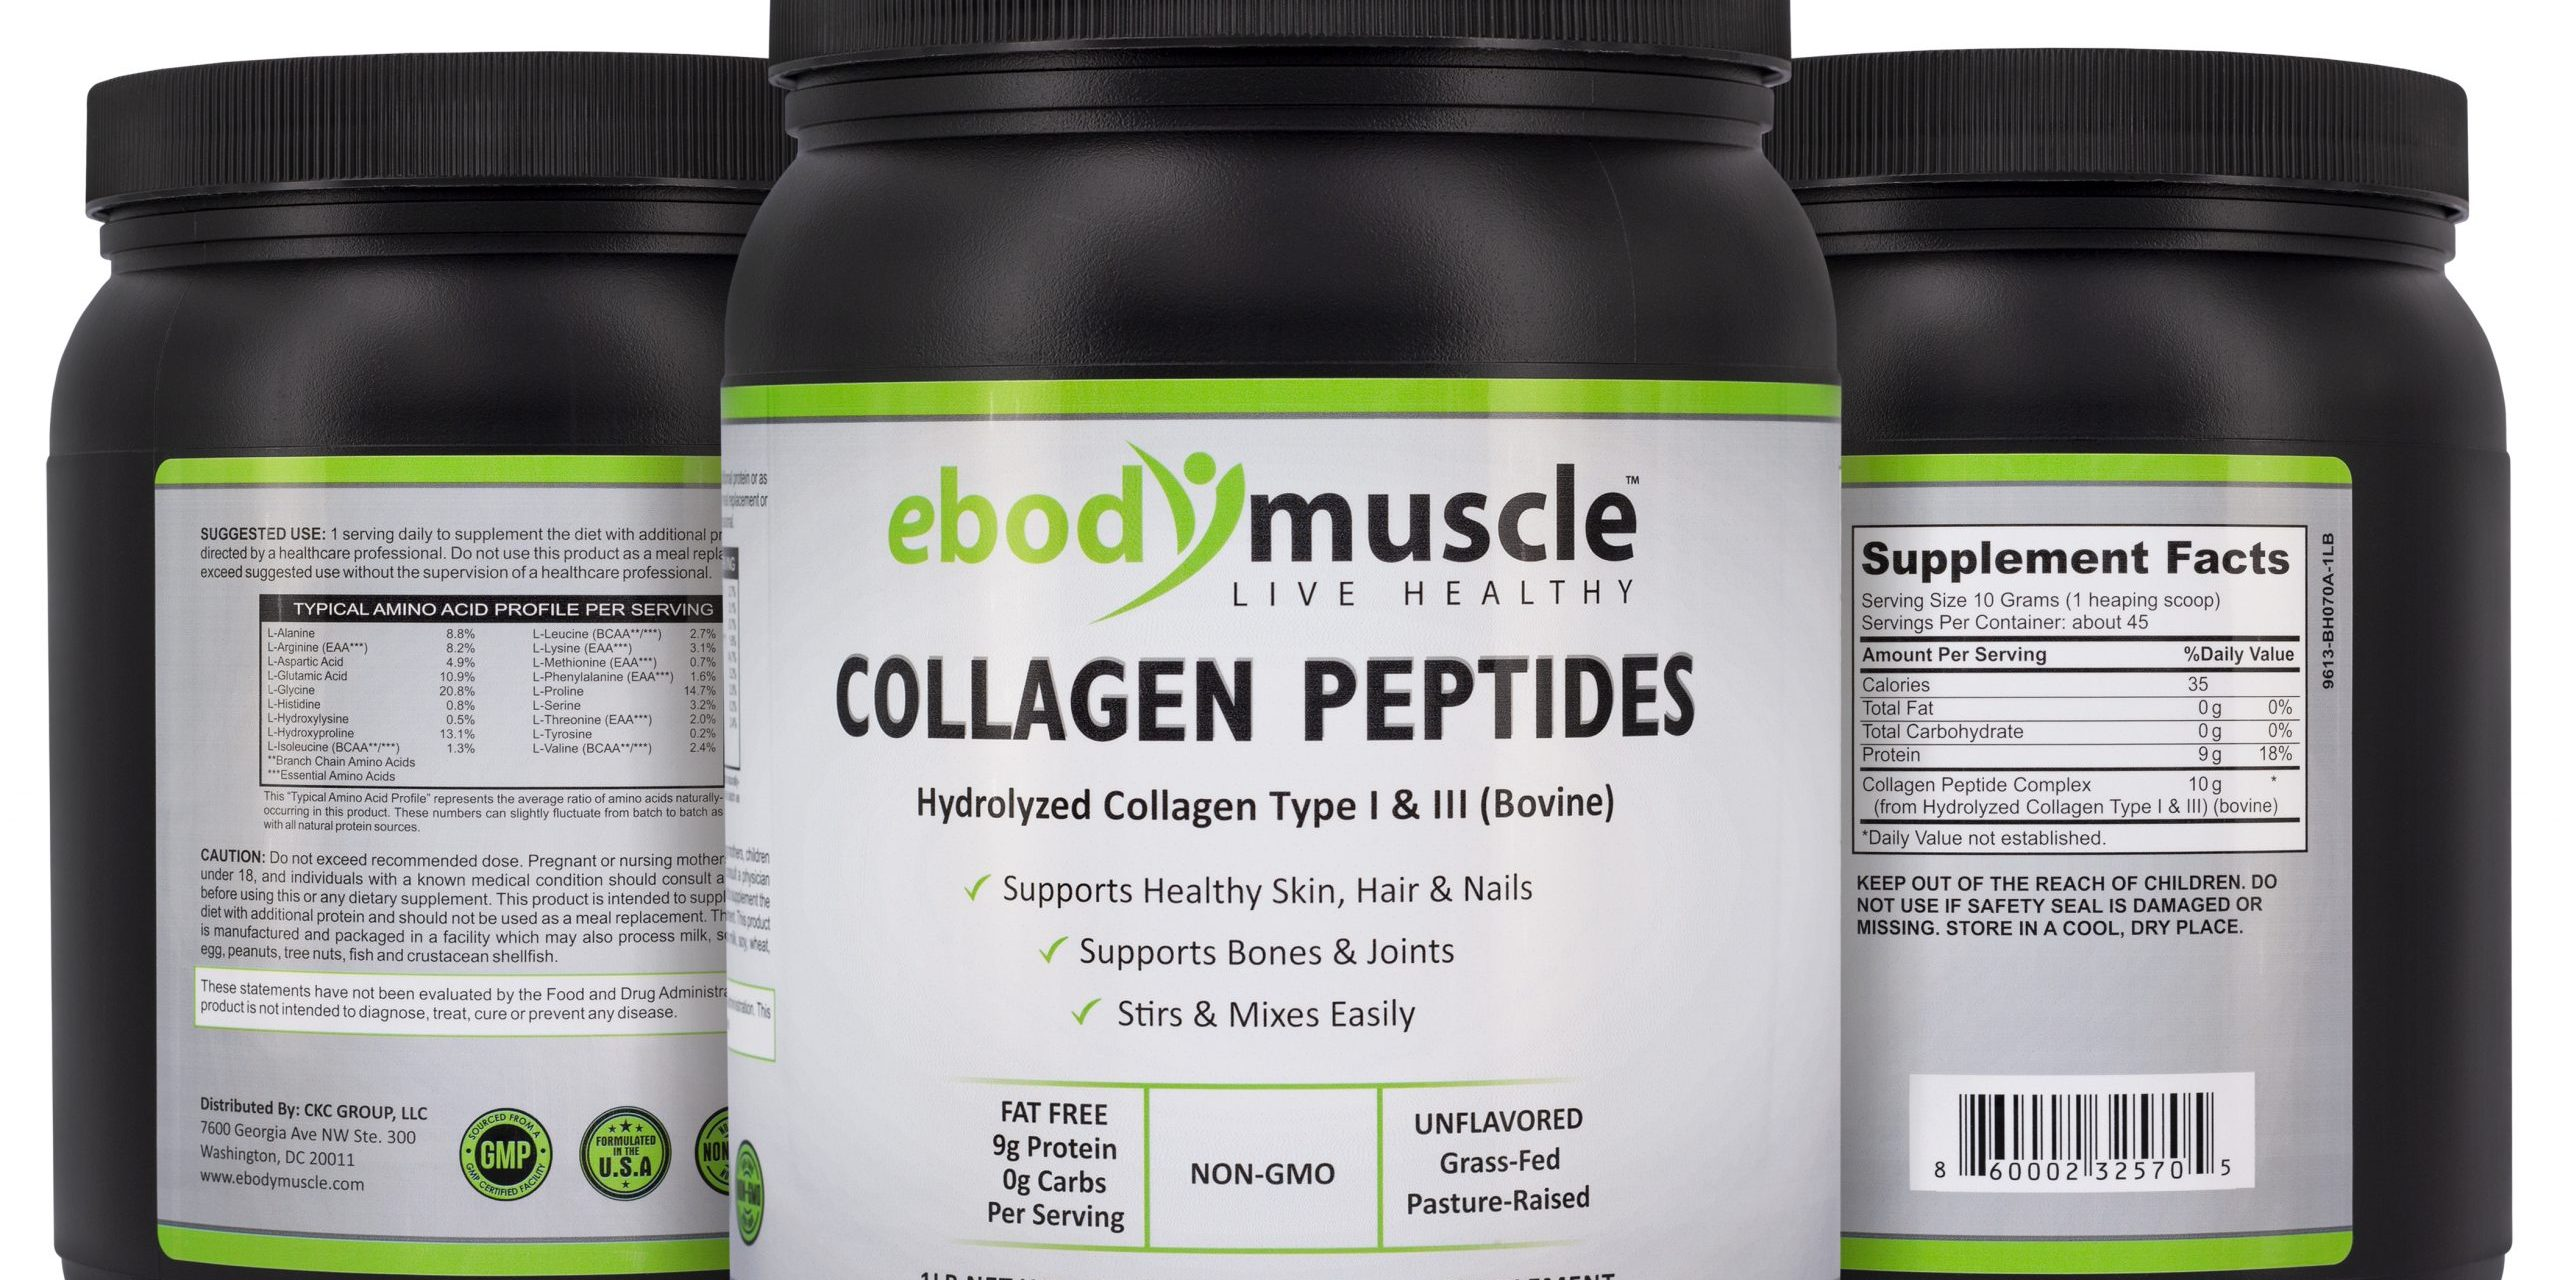 Why Do You Need To Try Out The Collagen Supplements Today?